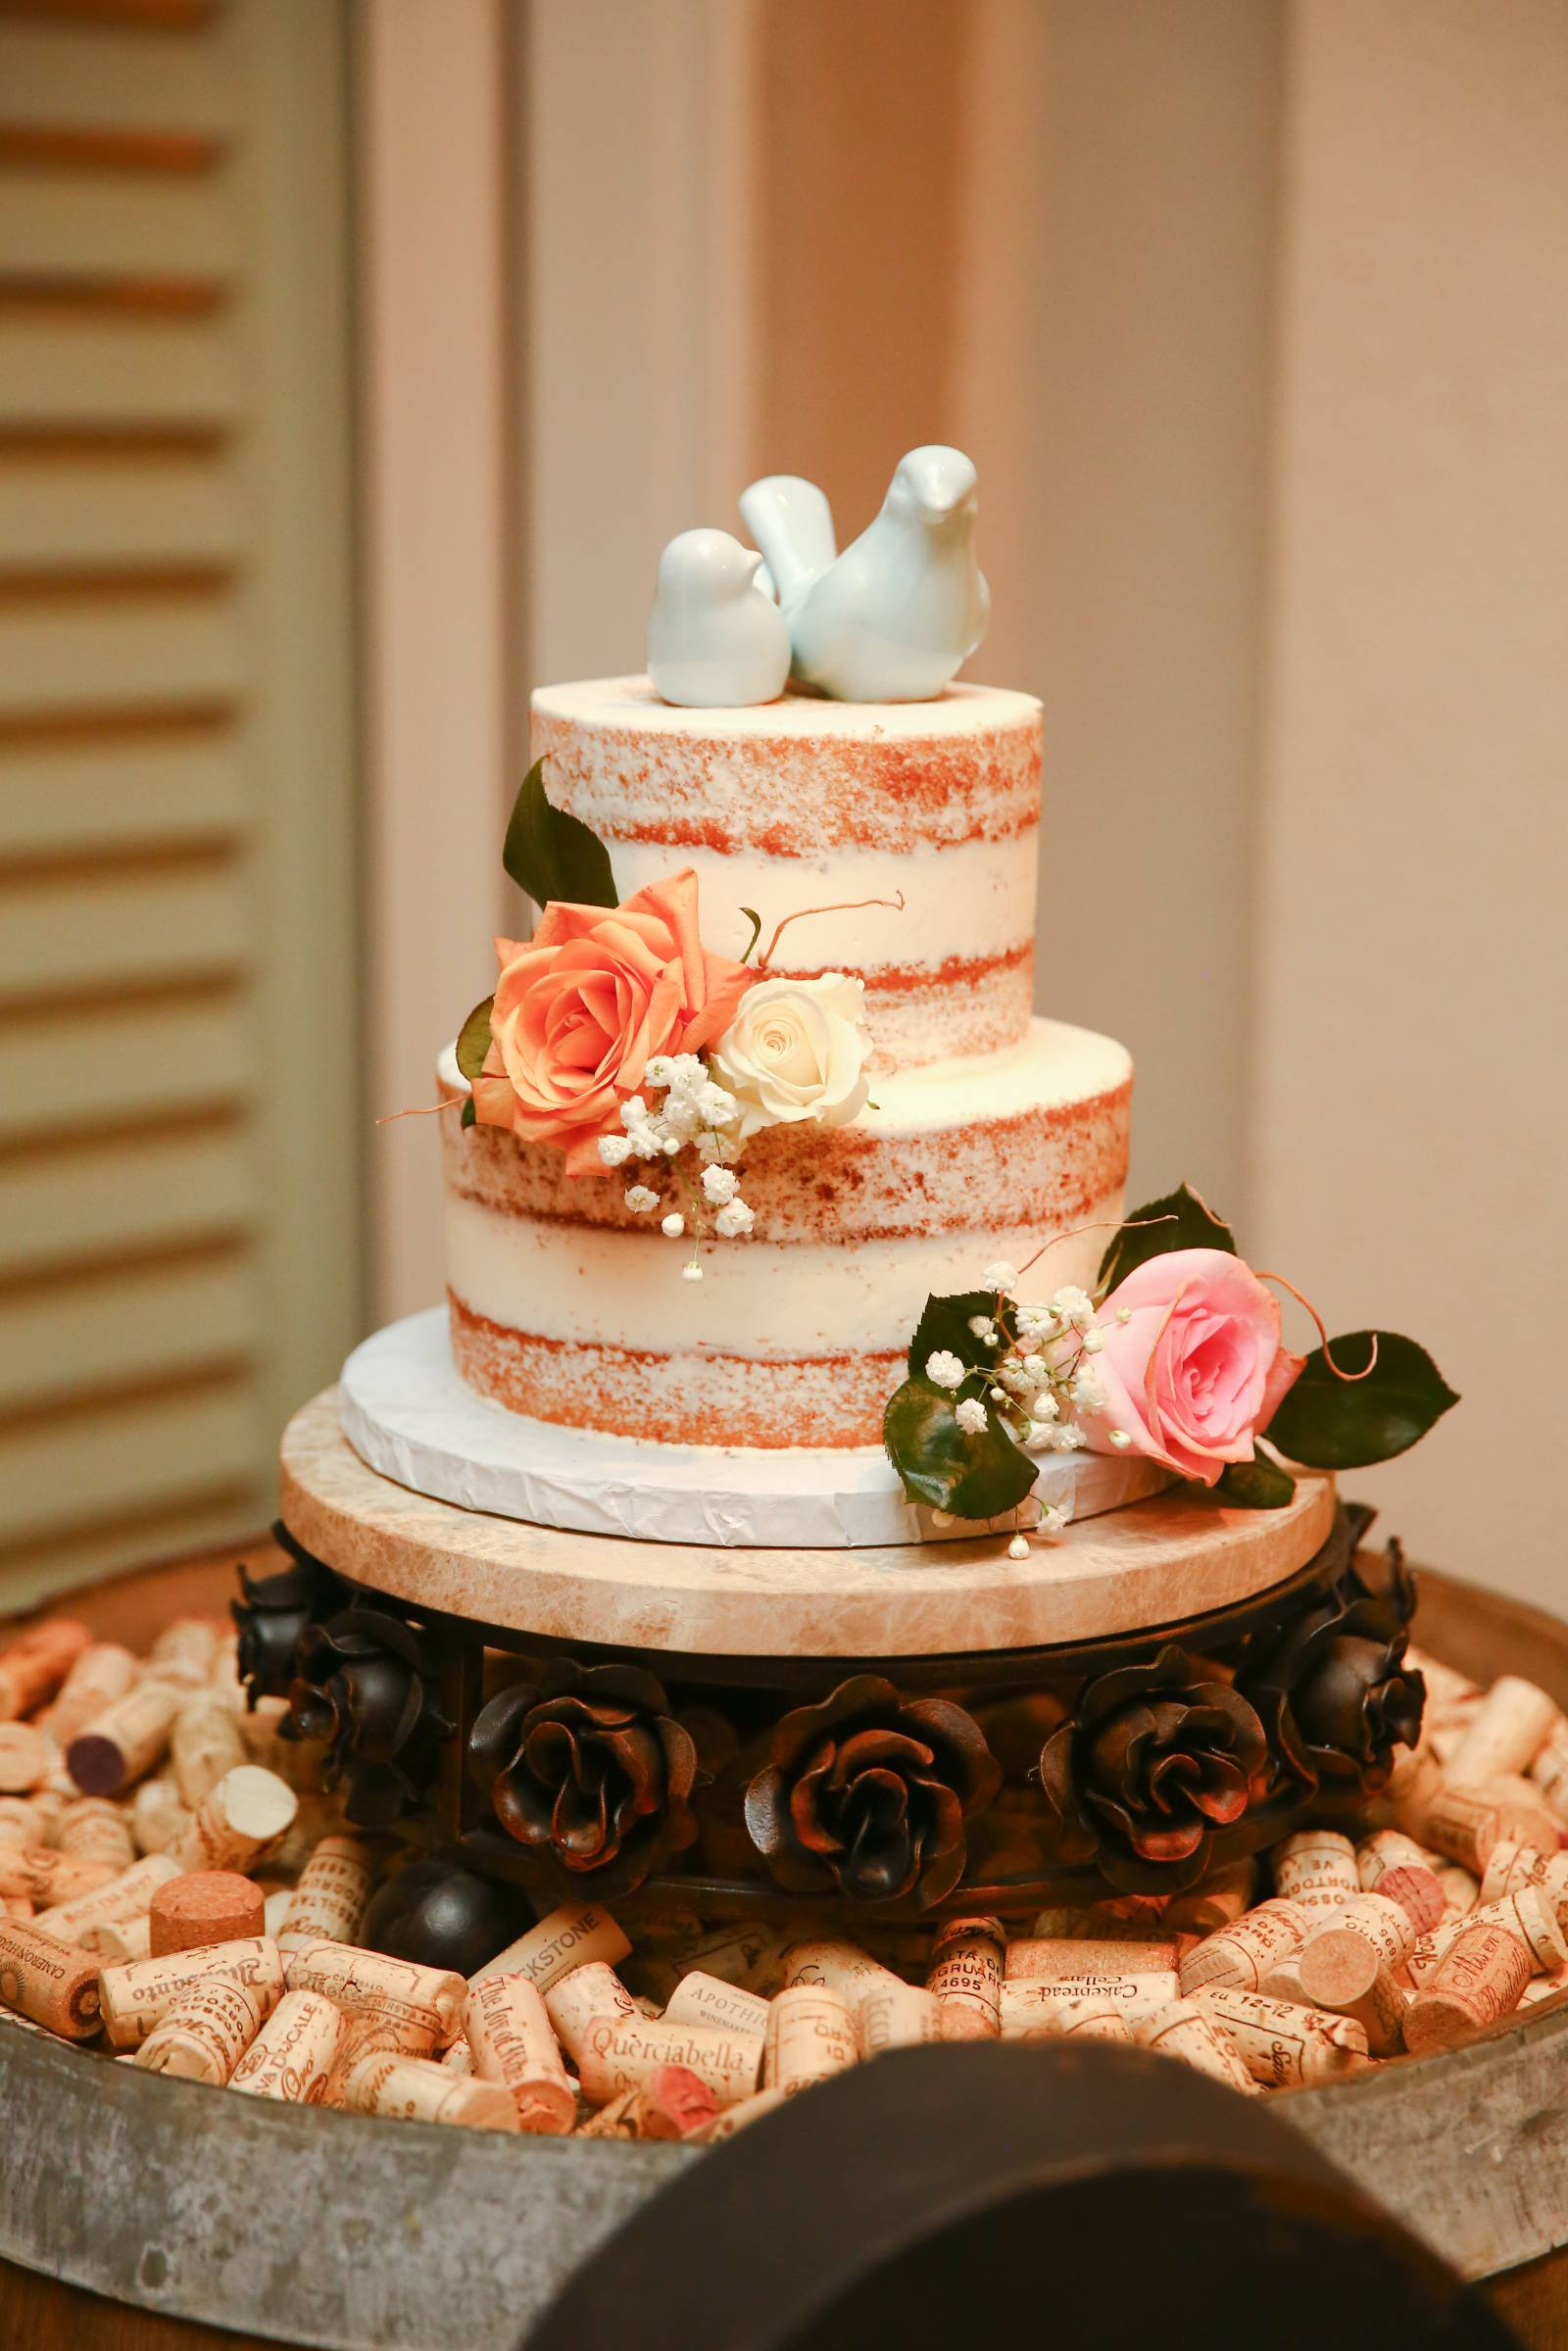 Naked cake with dove cake topper